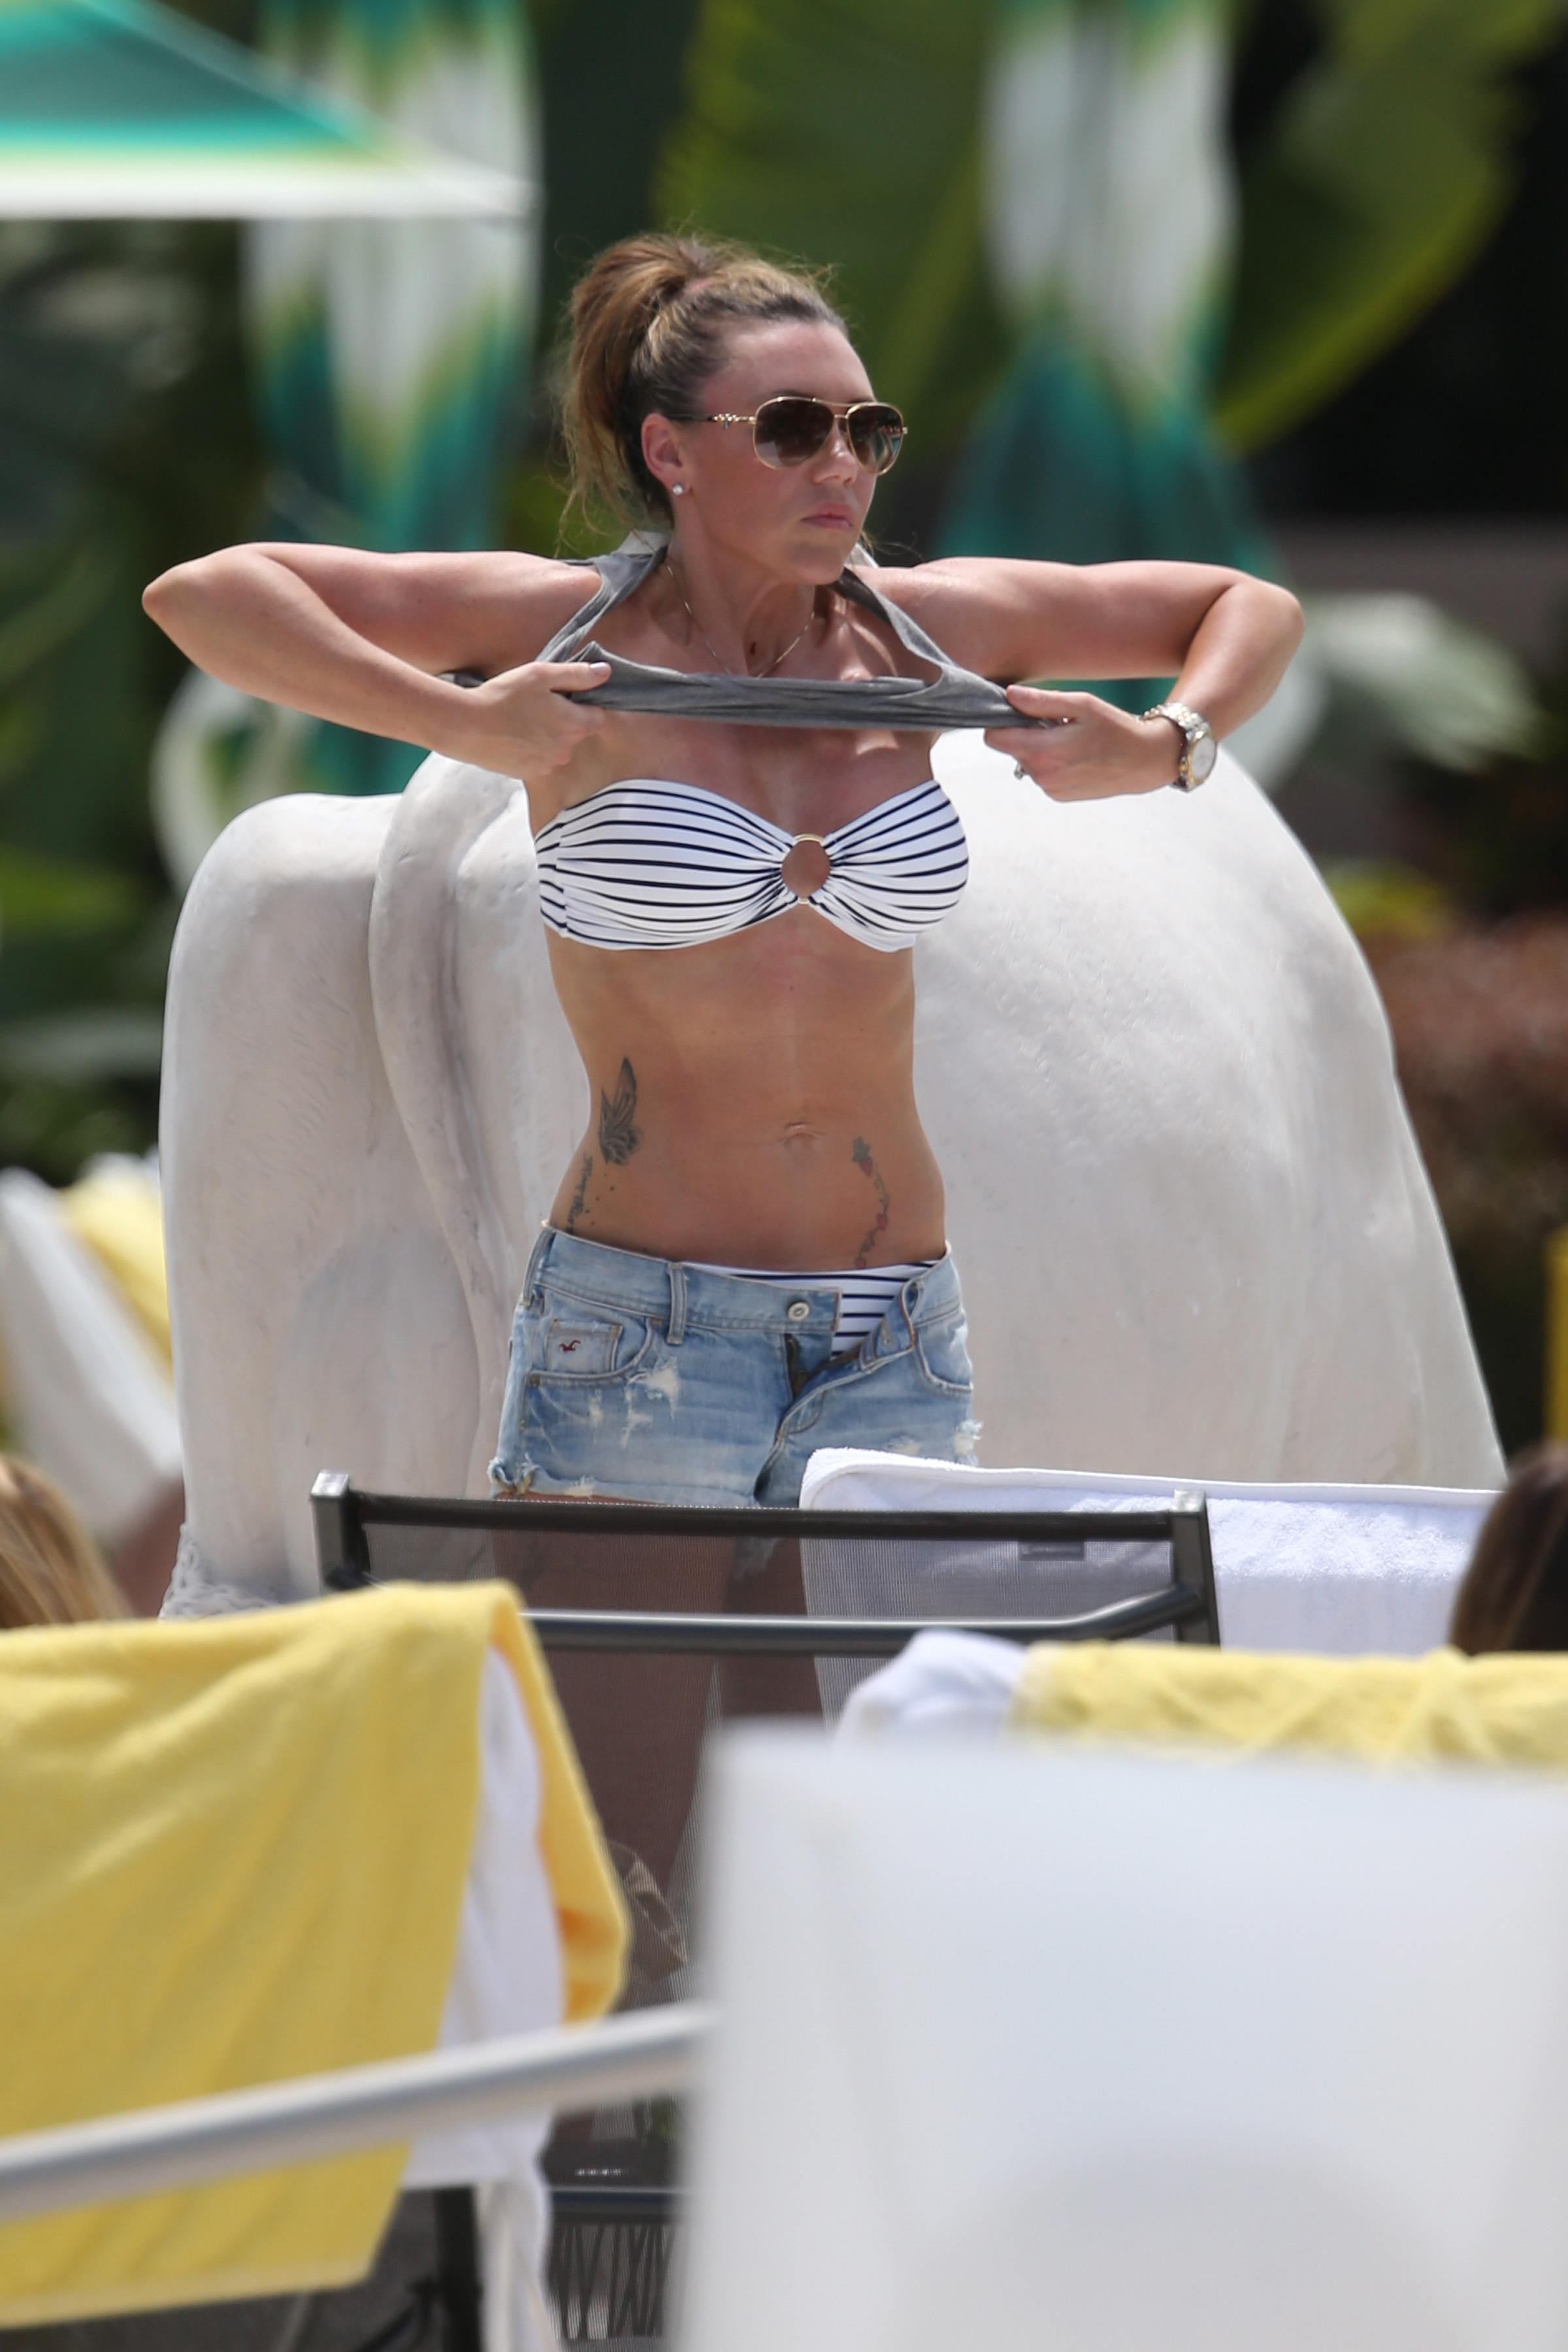 Michelle Heaton Filming a fitness show on Miami Beach, Florida (May 21, 2013)